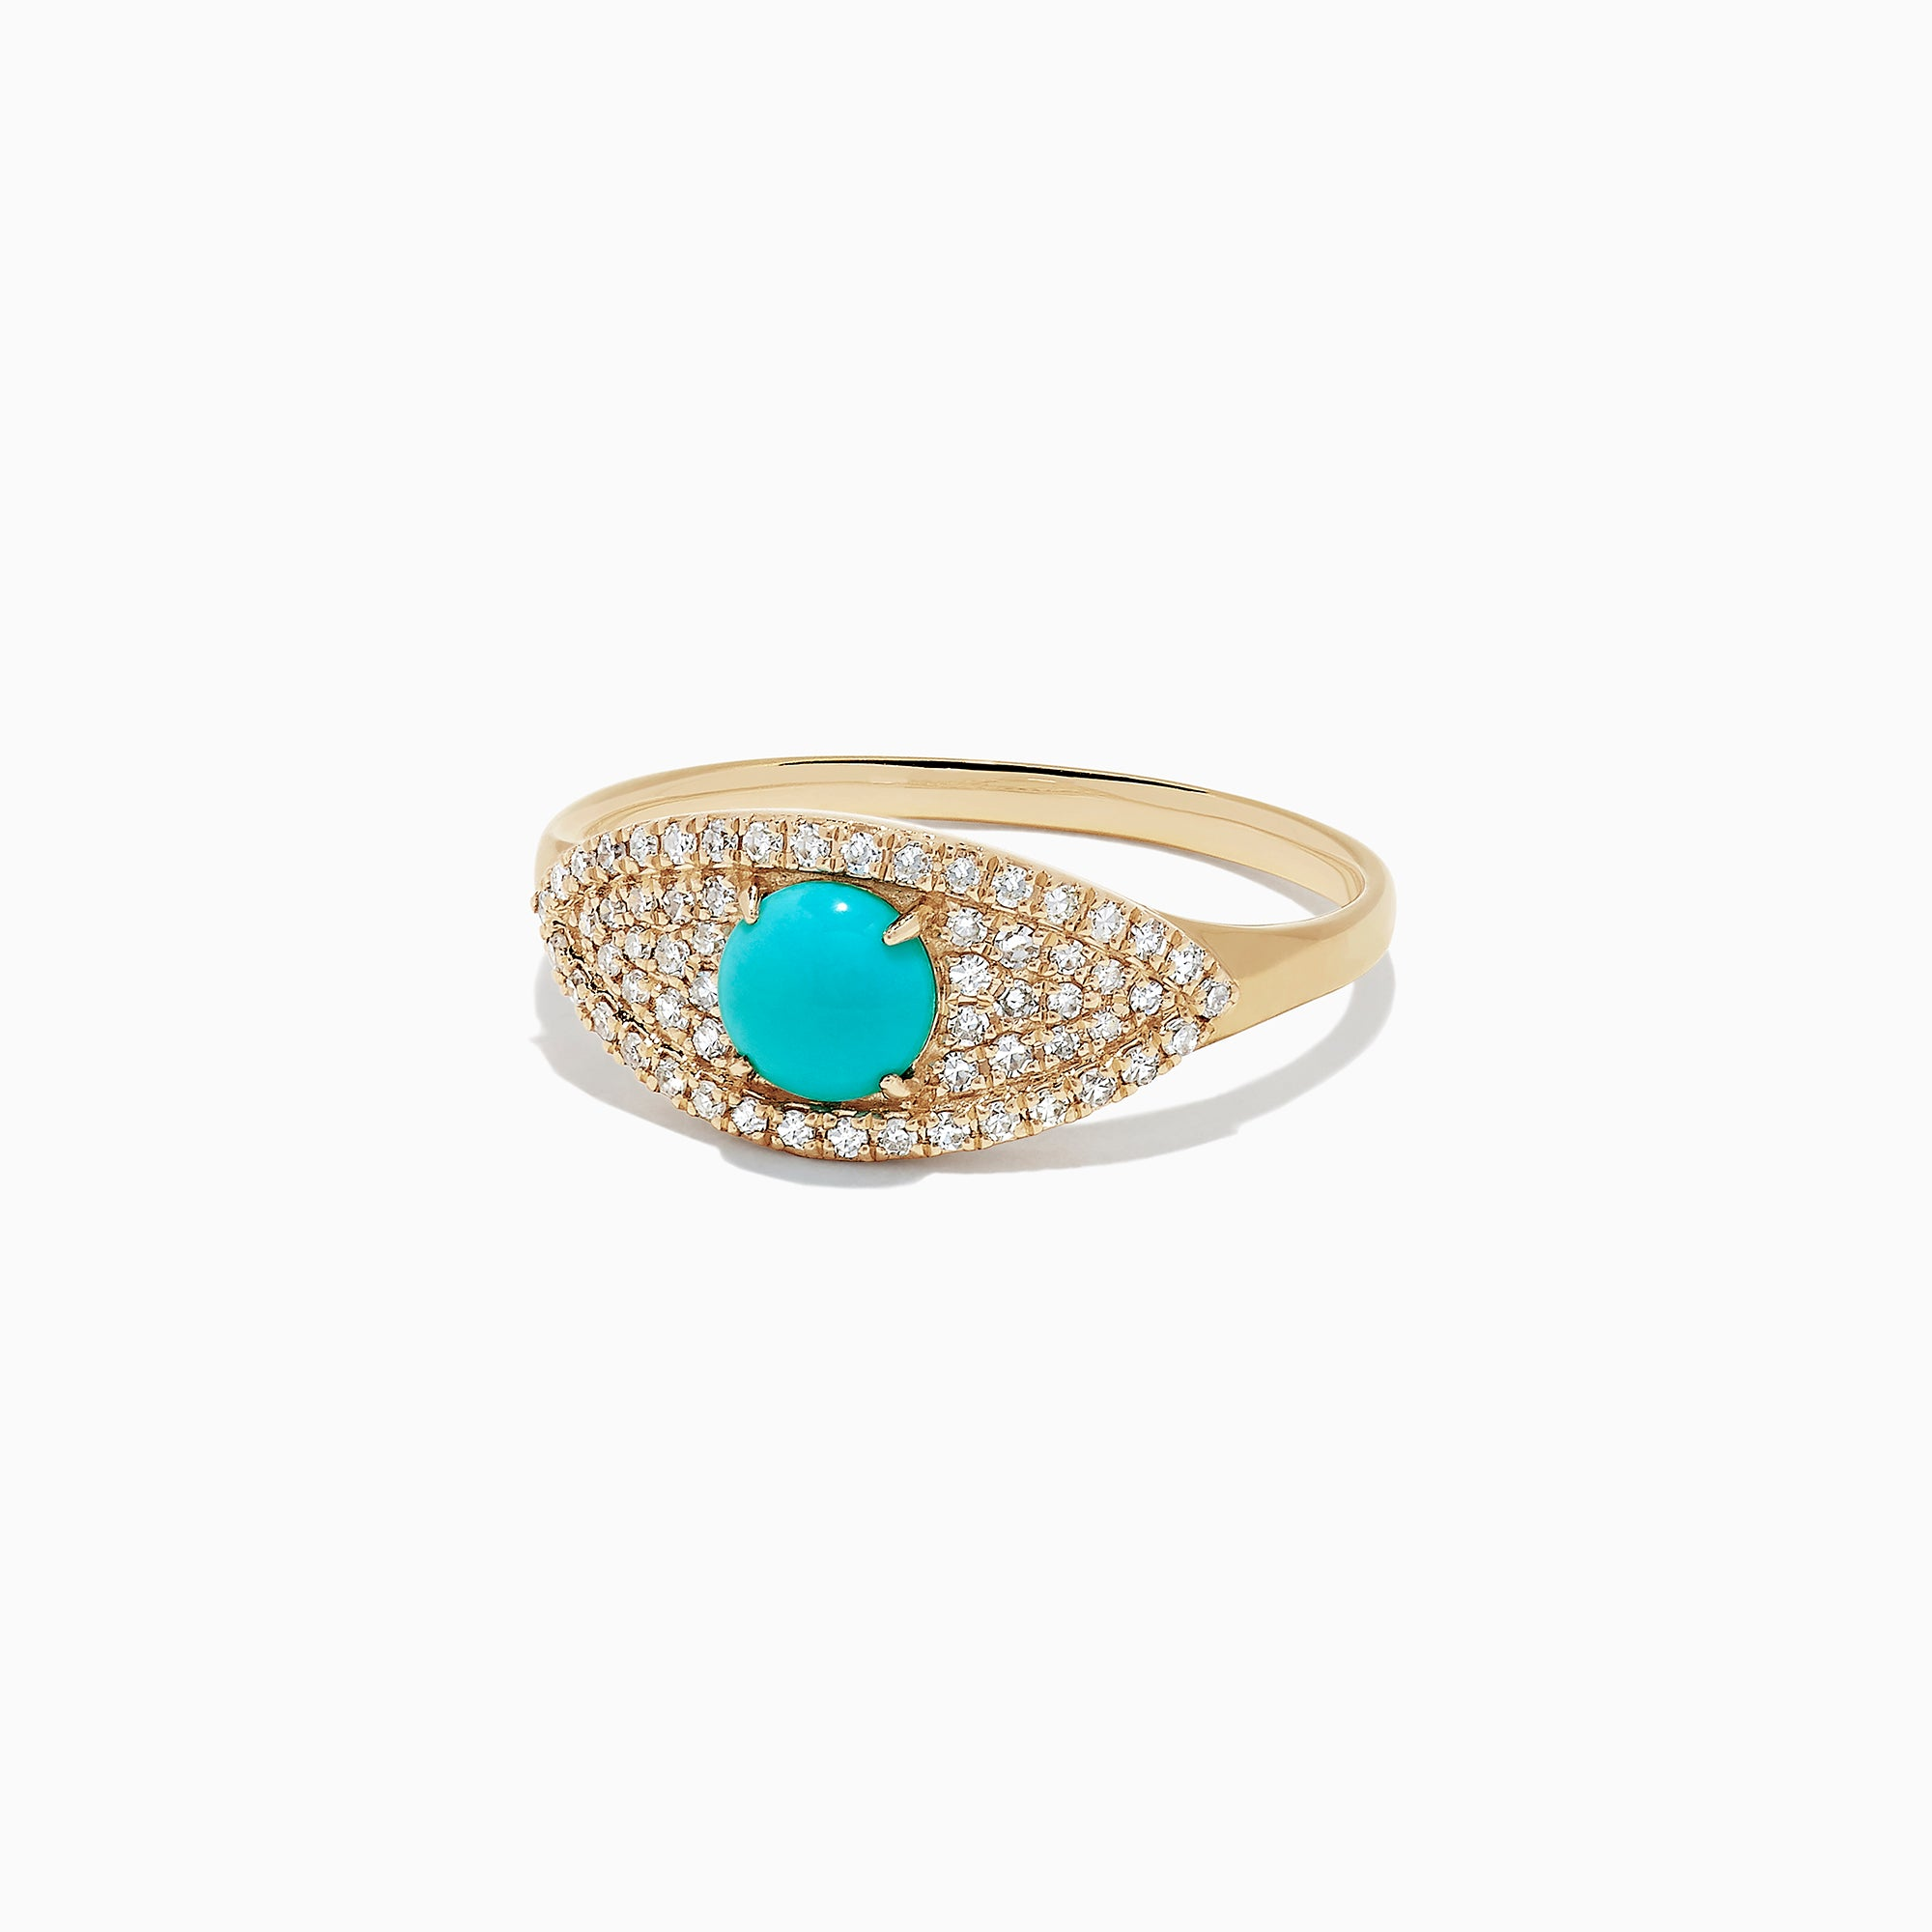 Effy Novelty 14K Yellow Gold Turquoise and Diamond Evil Eye Ring, 0.67 TCW